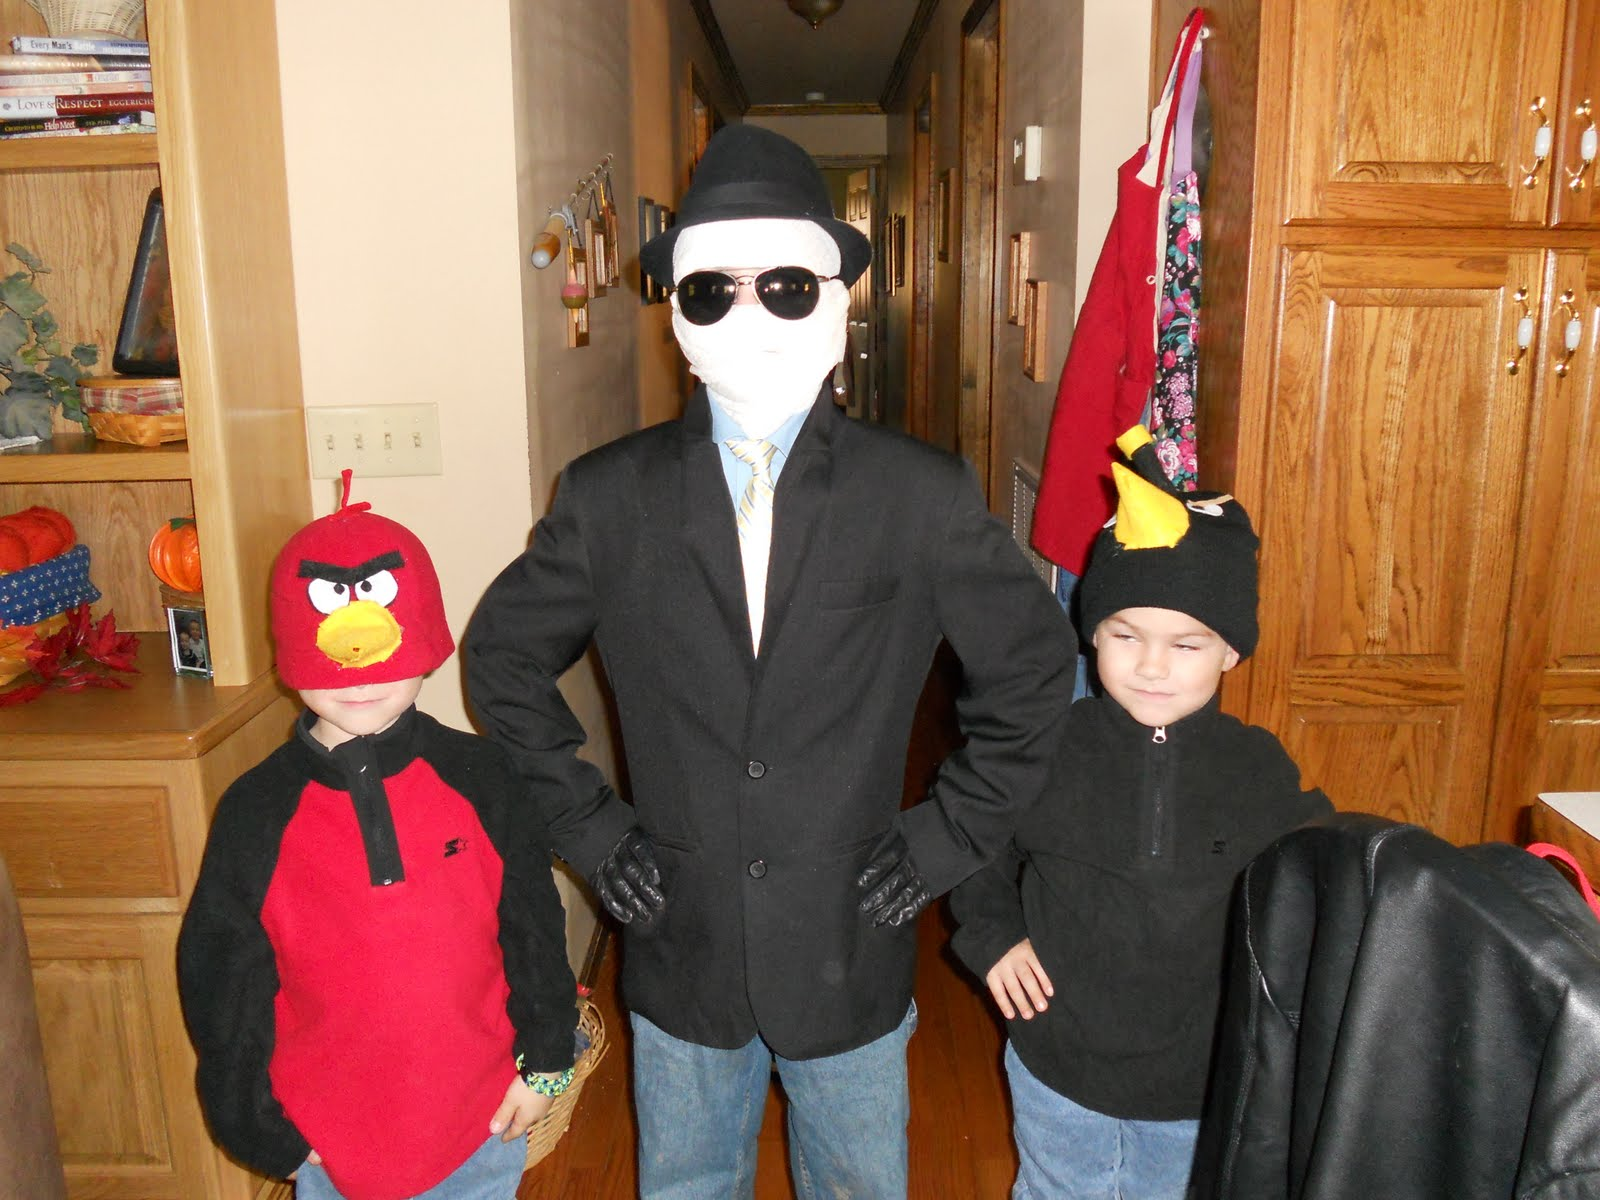 crafty mom of 4 boys: hello again & homemade halloween costumes